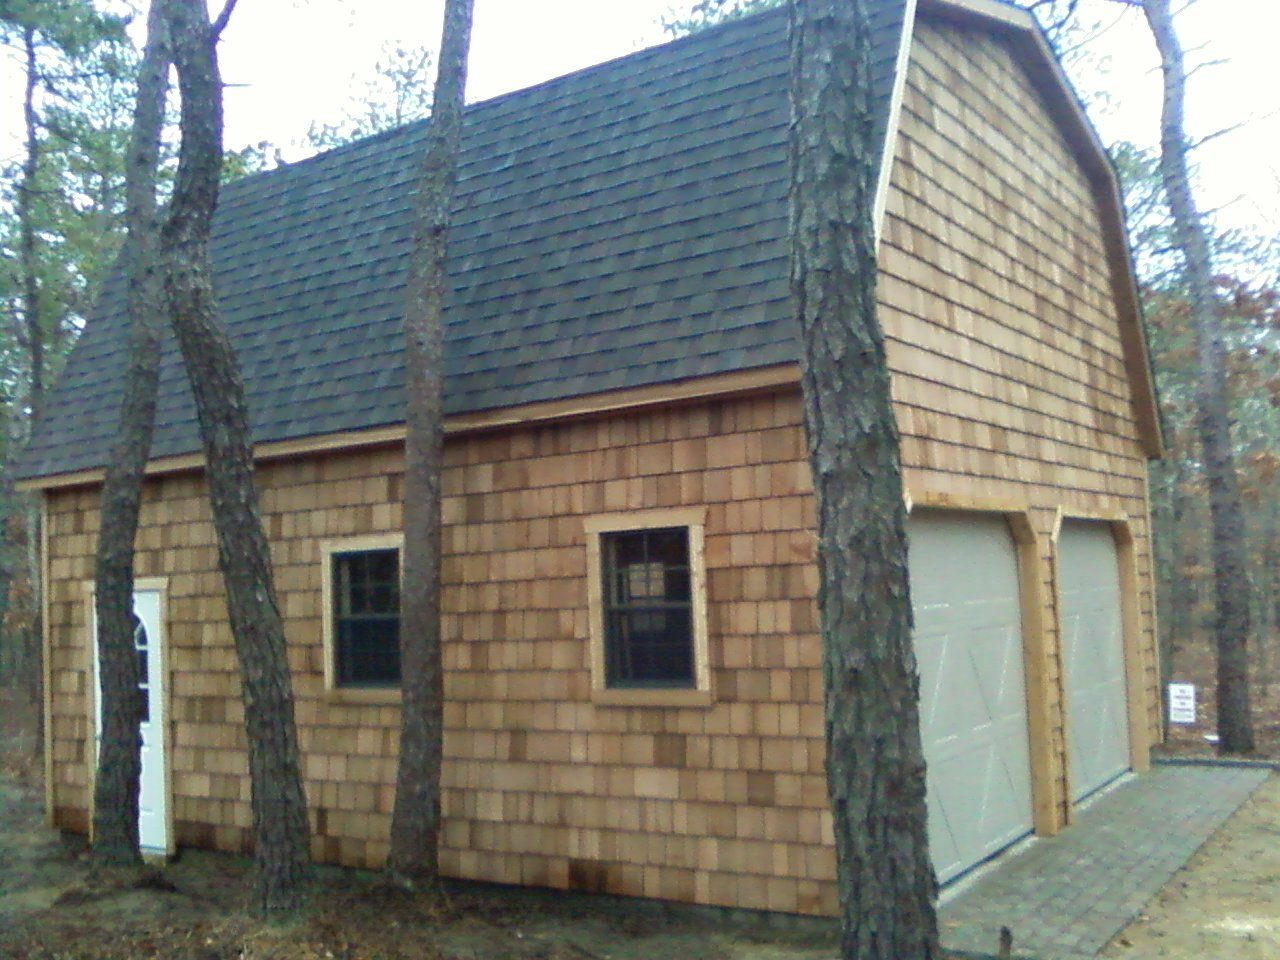 Best 2 Car 2 Story Garage With Cedar Shakes Siding And 30 Year 400 x 300